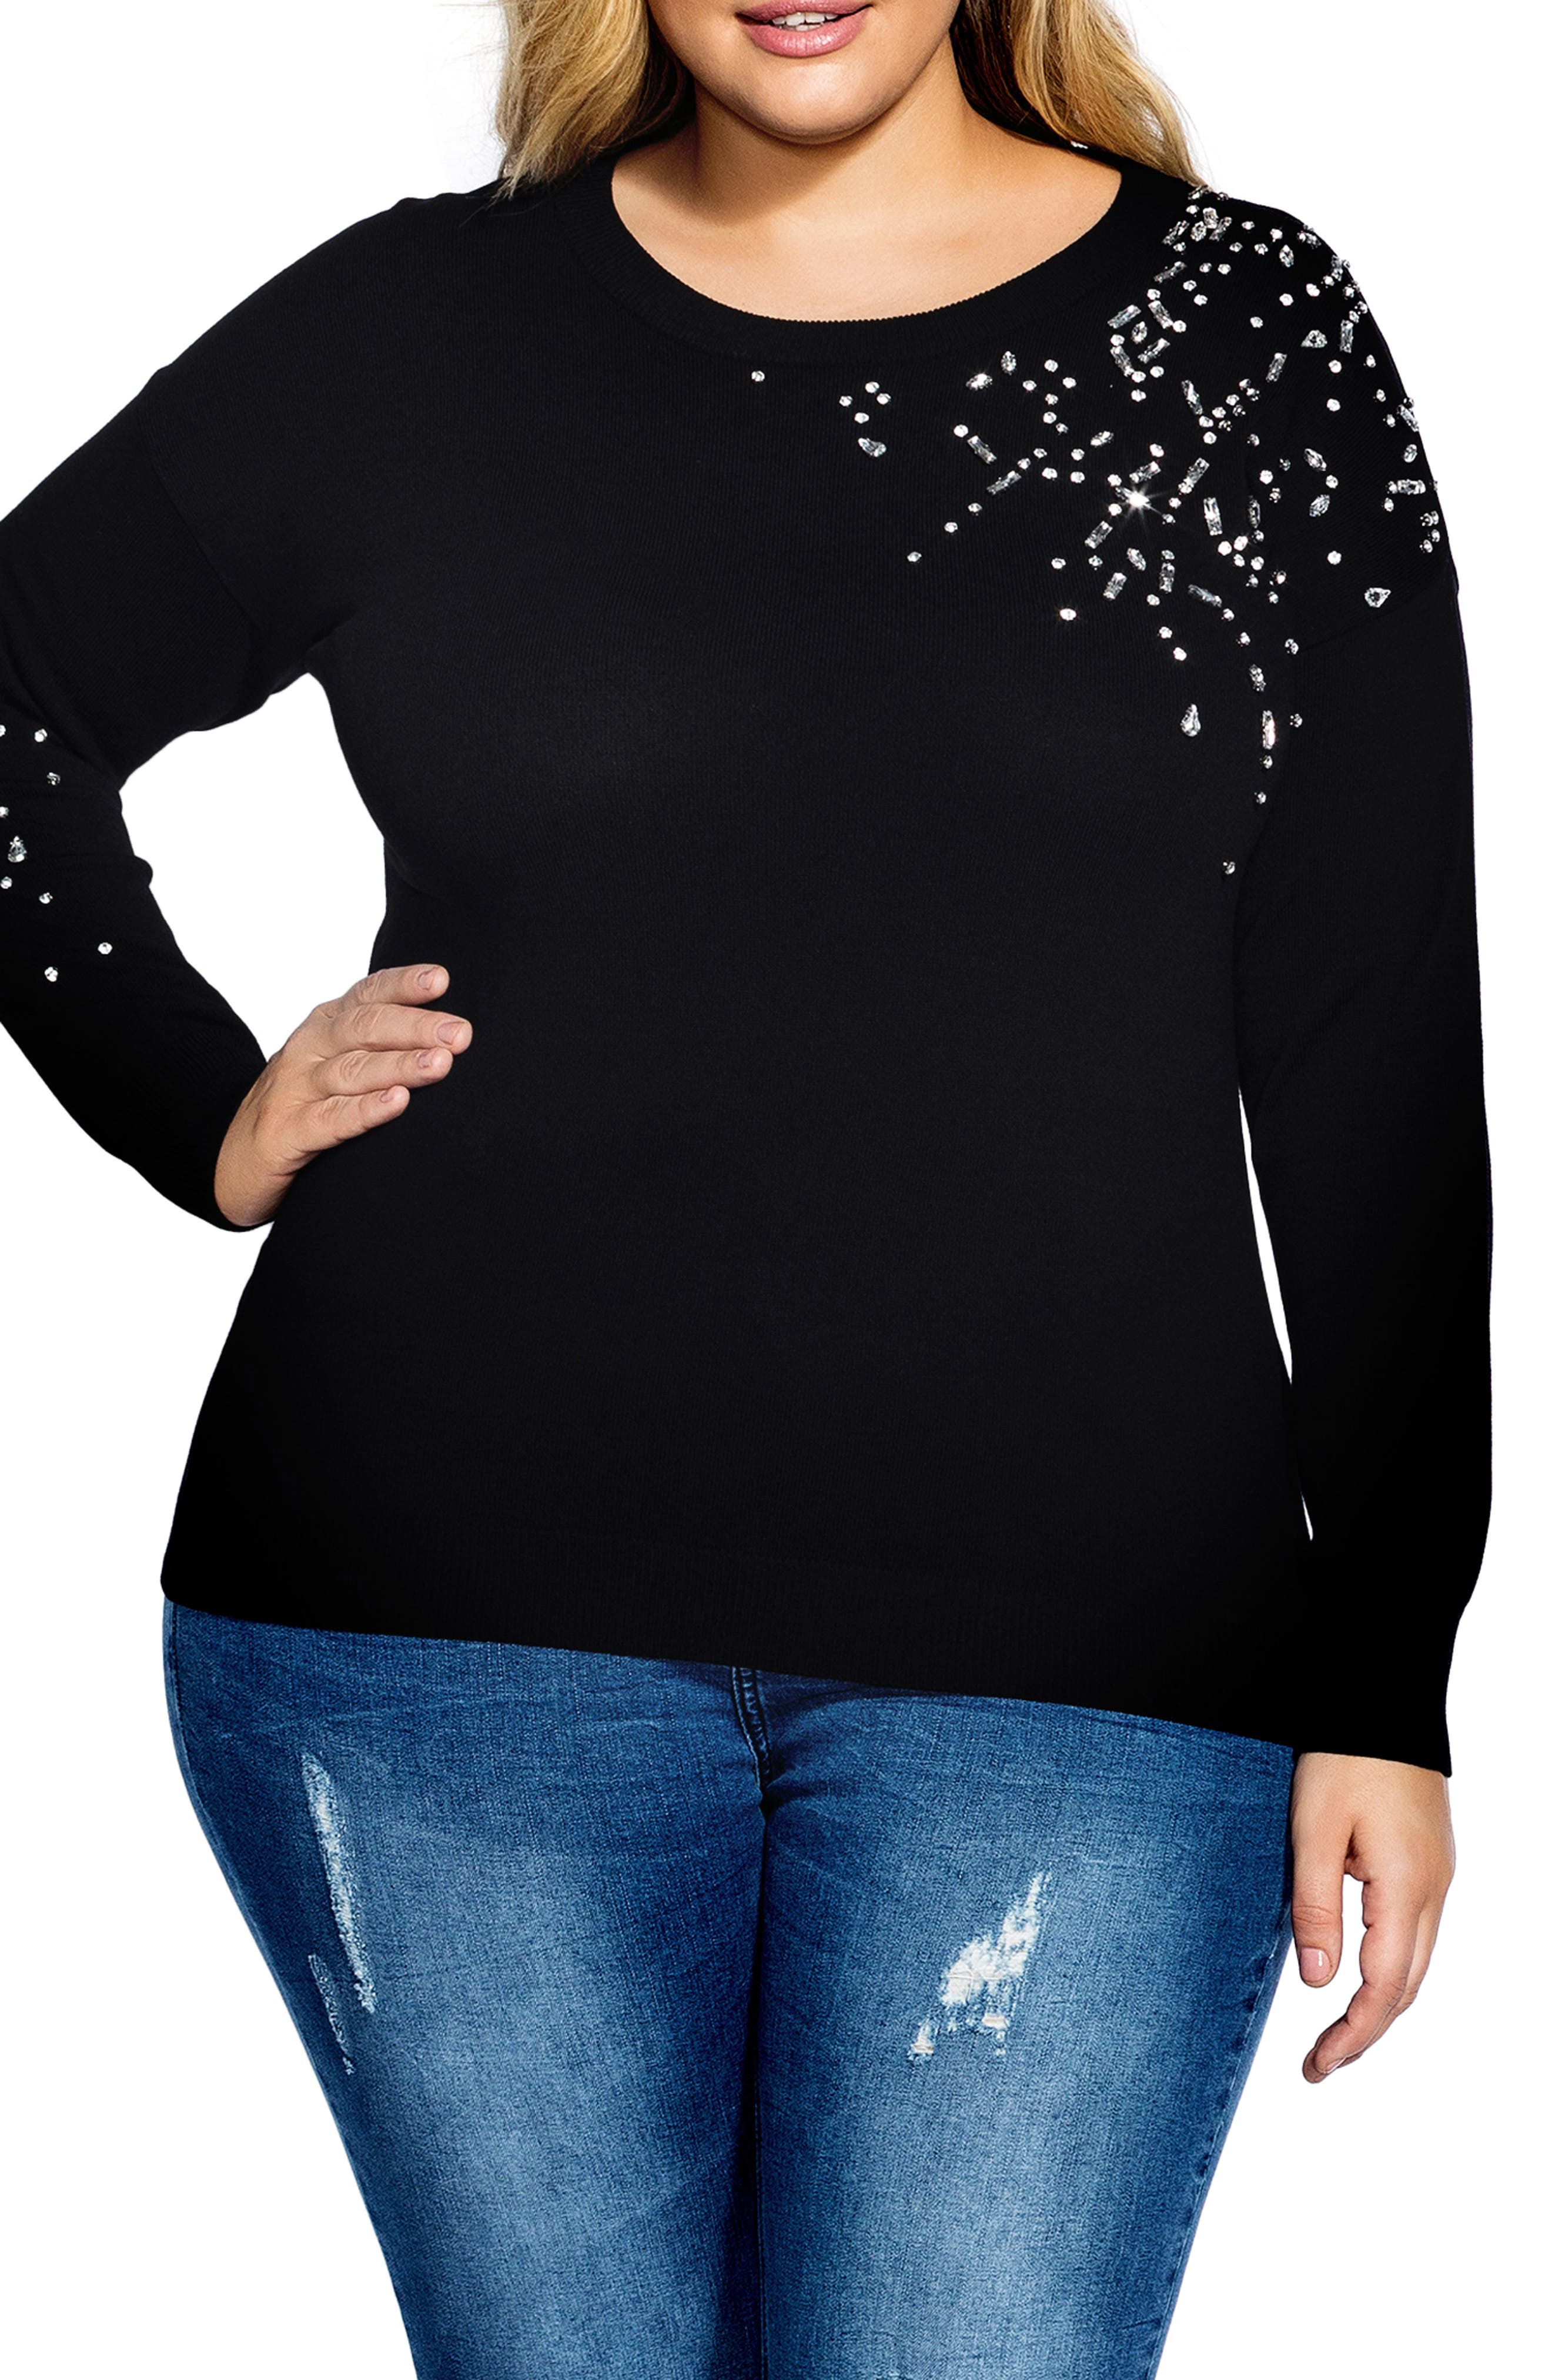 CITY CHIC,                             Embellished Sweater,                             Main thumbnail 1, color,                             BLACK